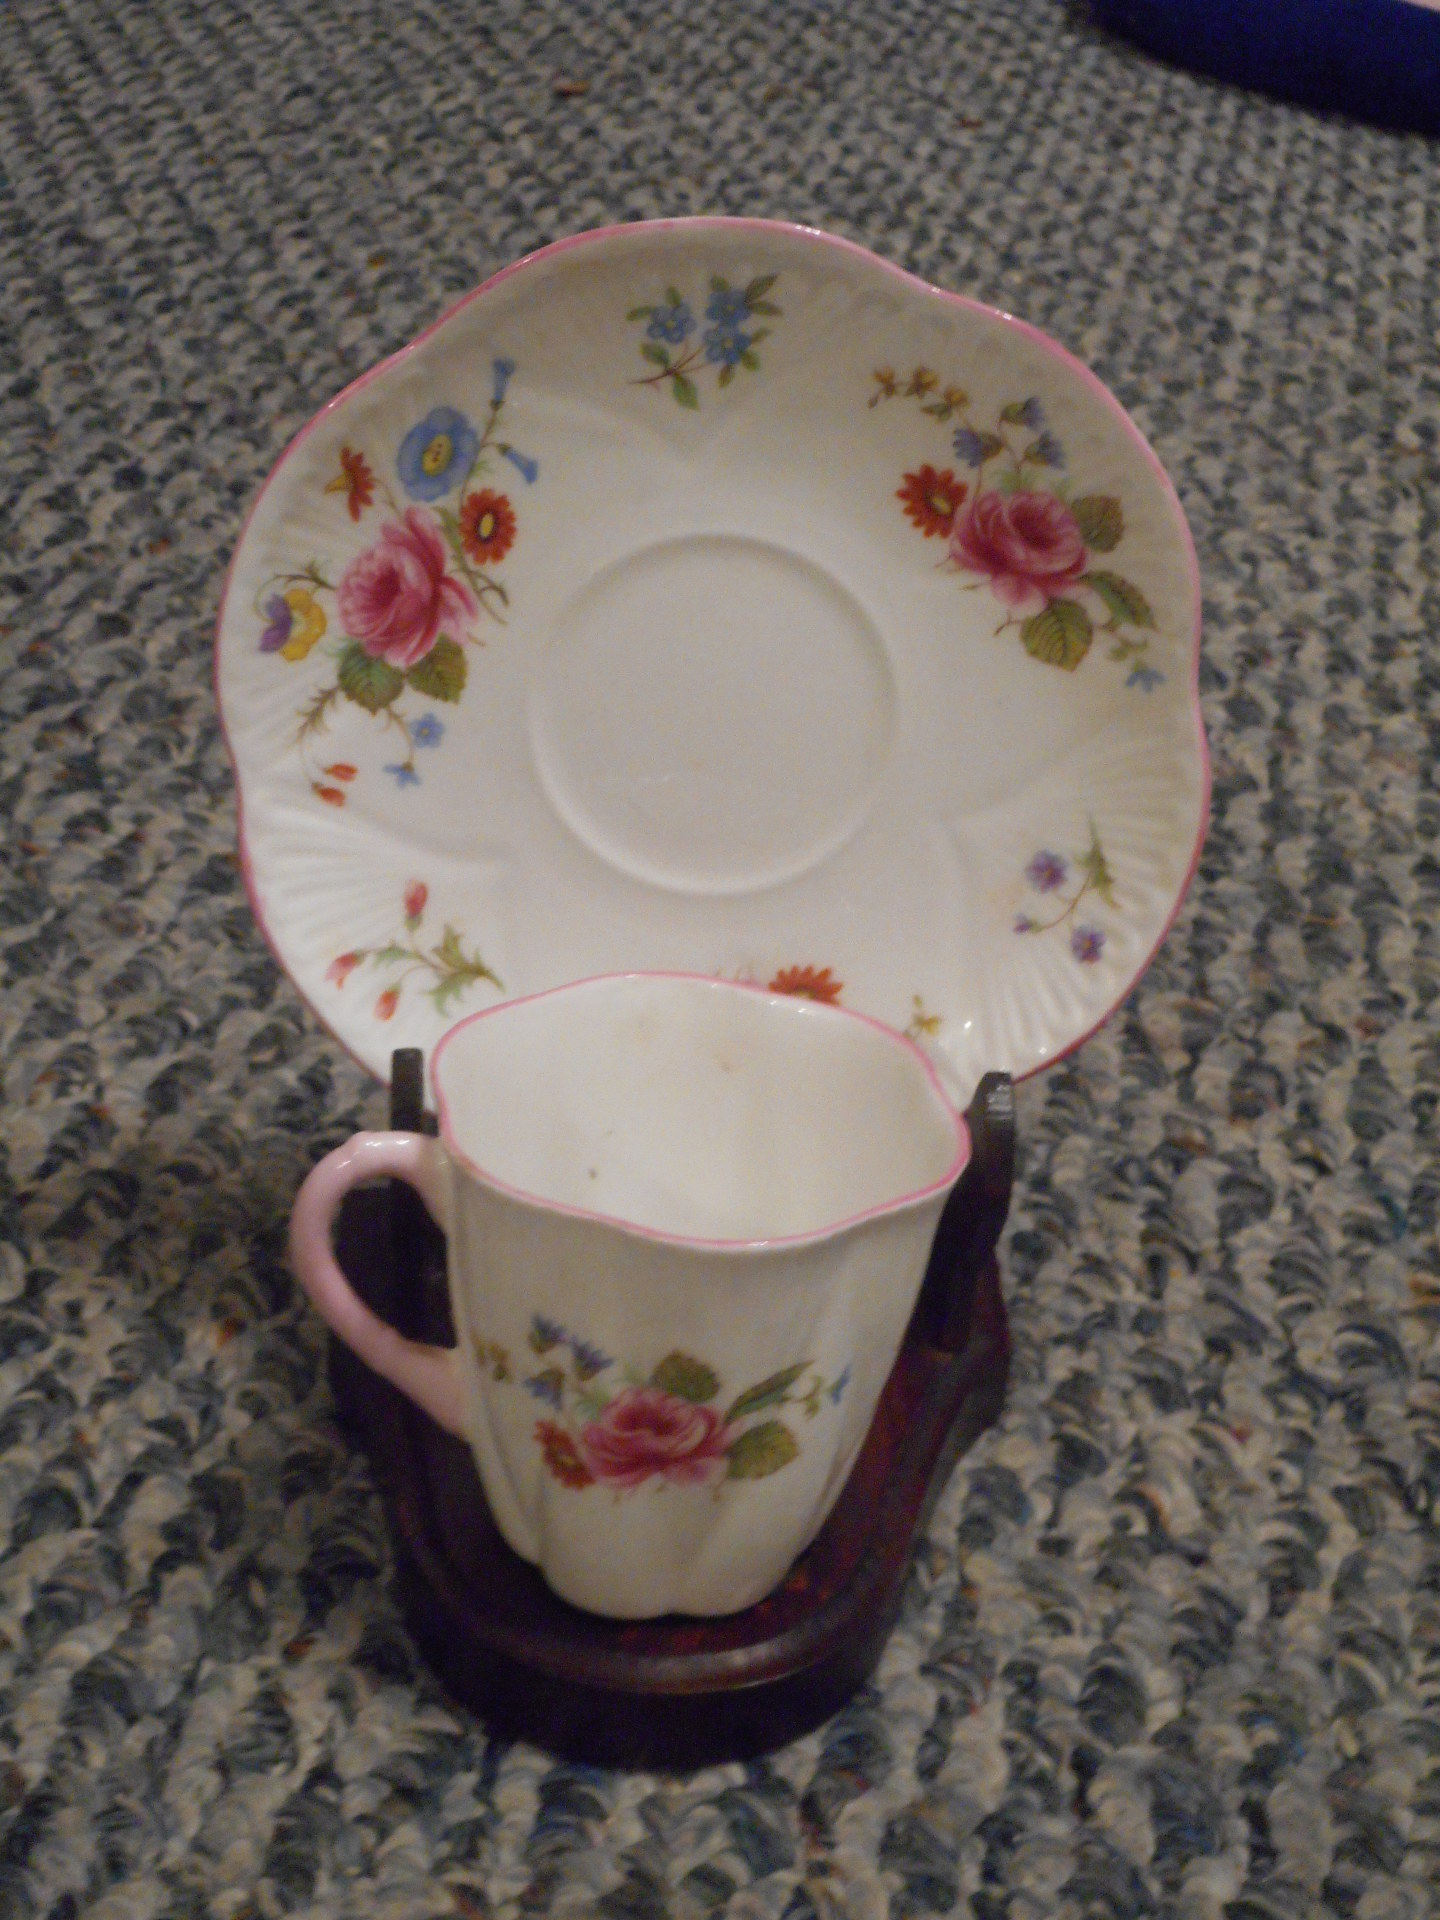 Cup and Saucer in Wooden Display Stand